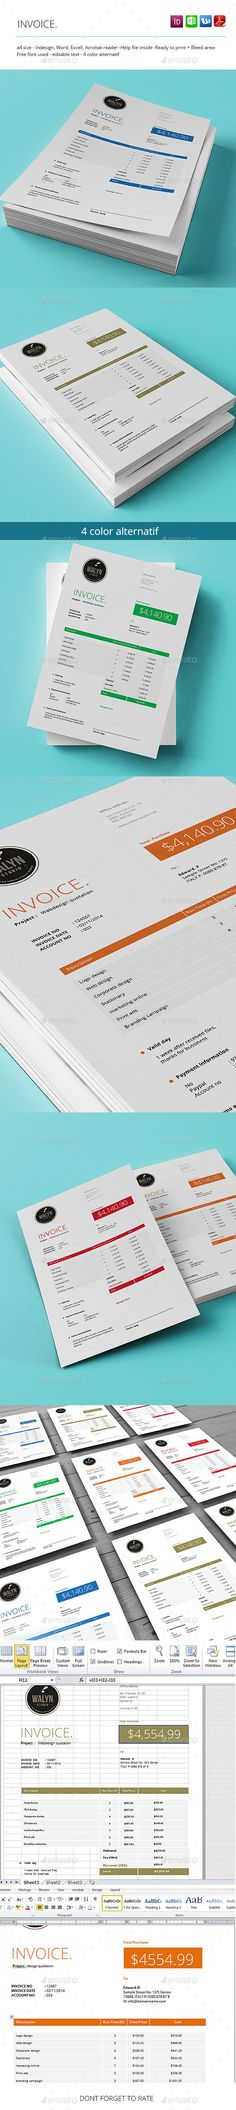 SEO Report / Proposal Template - A4 Landscape Seo report, Proposal - graphic design invoice sample